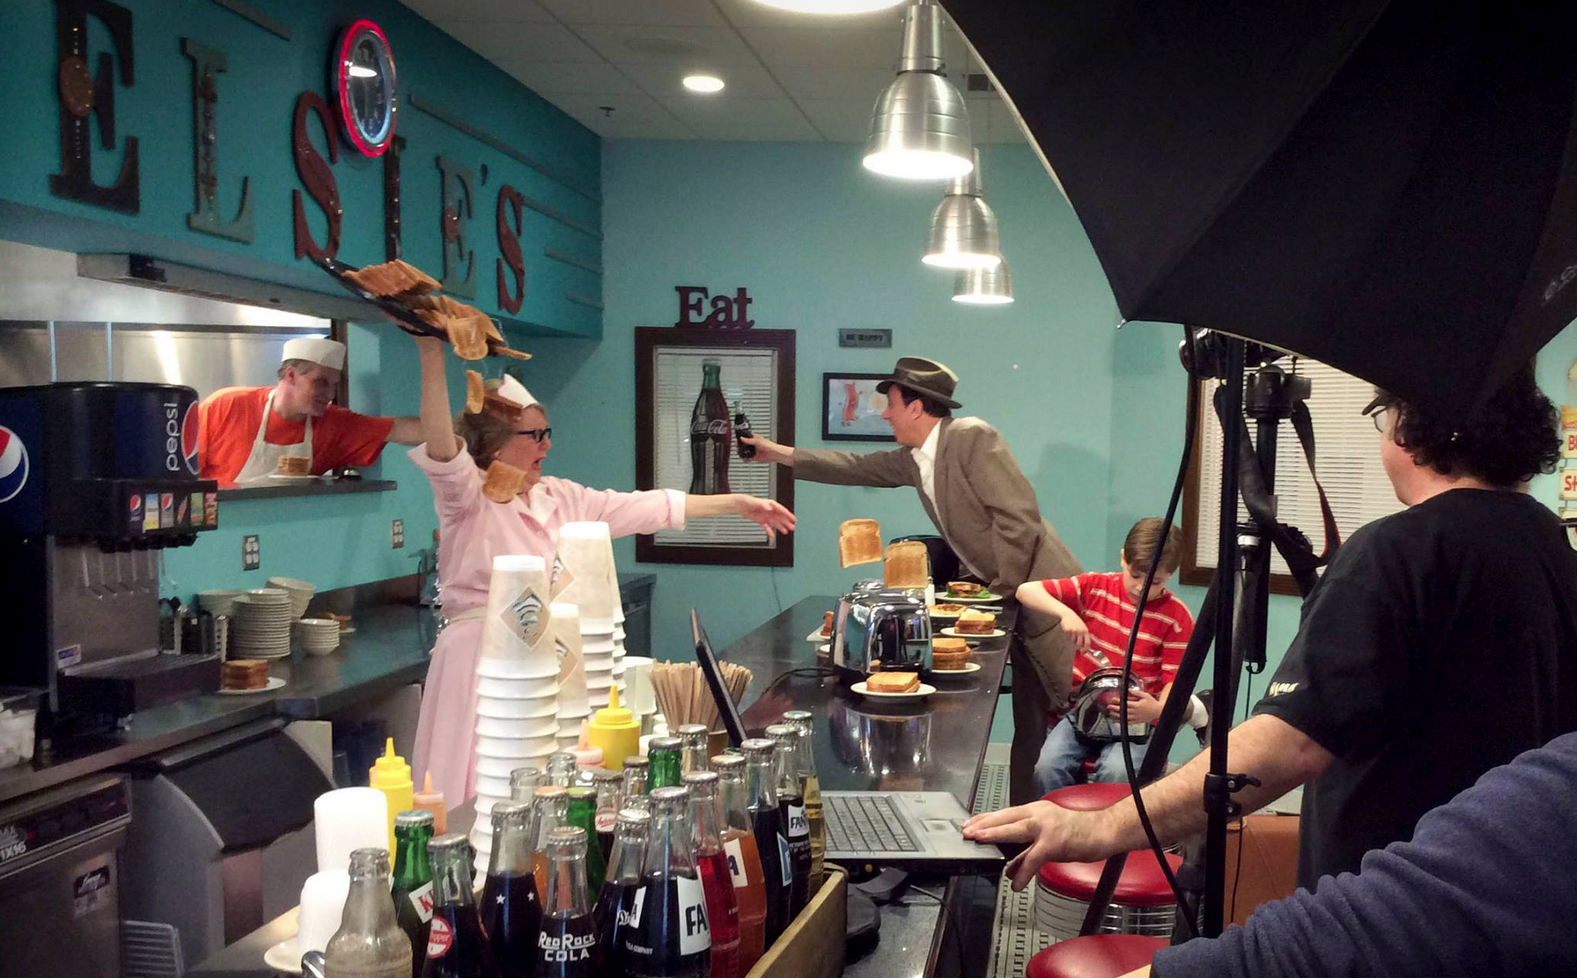 Photographer Mike Ricciardi at work during a taping of Arts & Culture Shorts